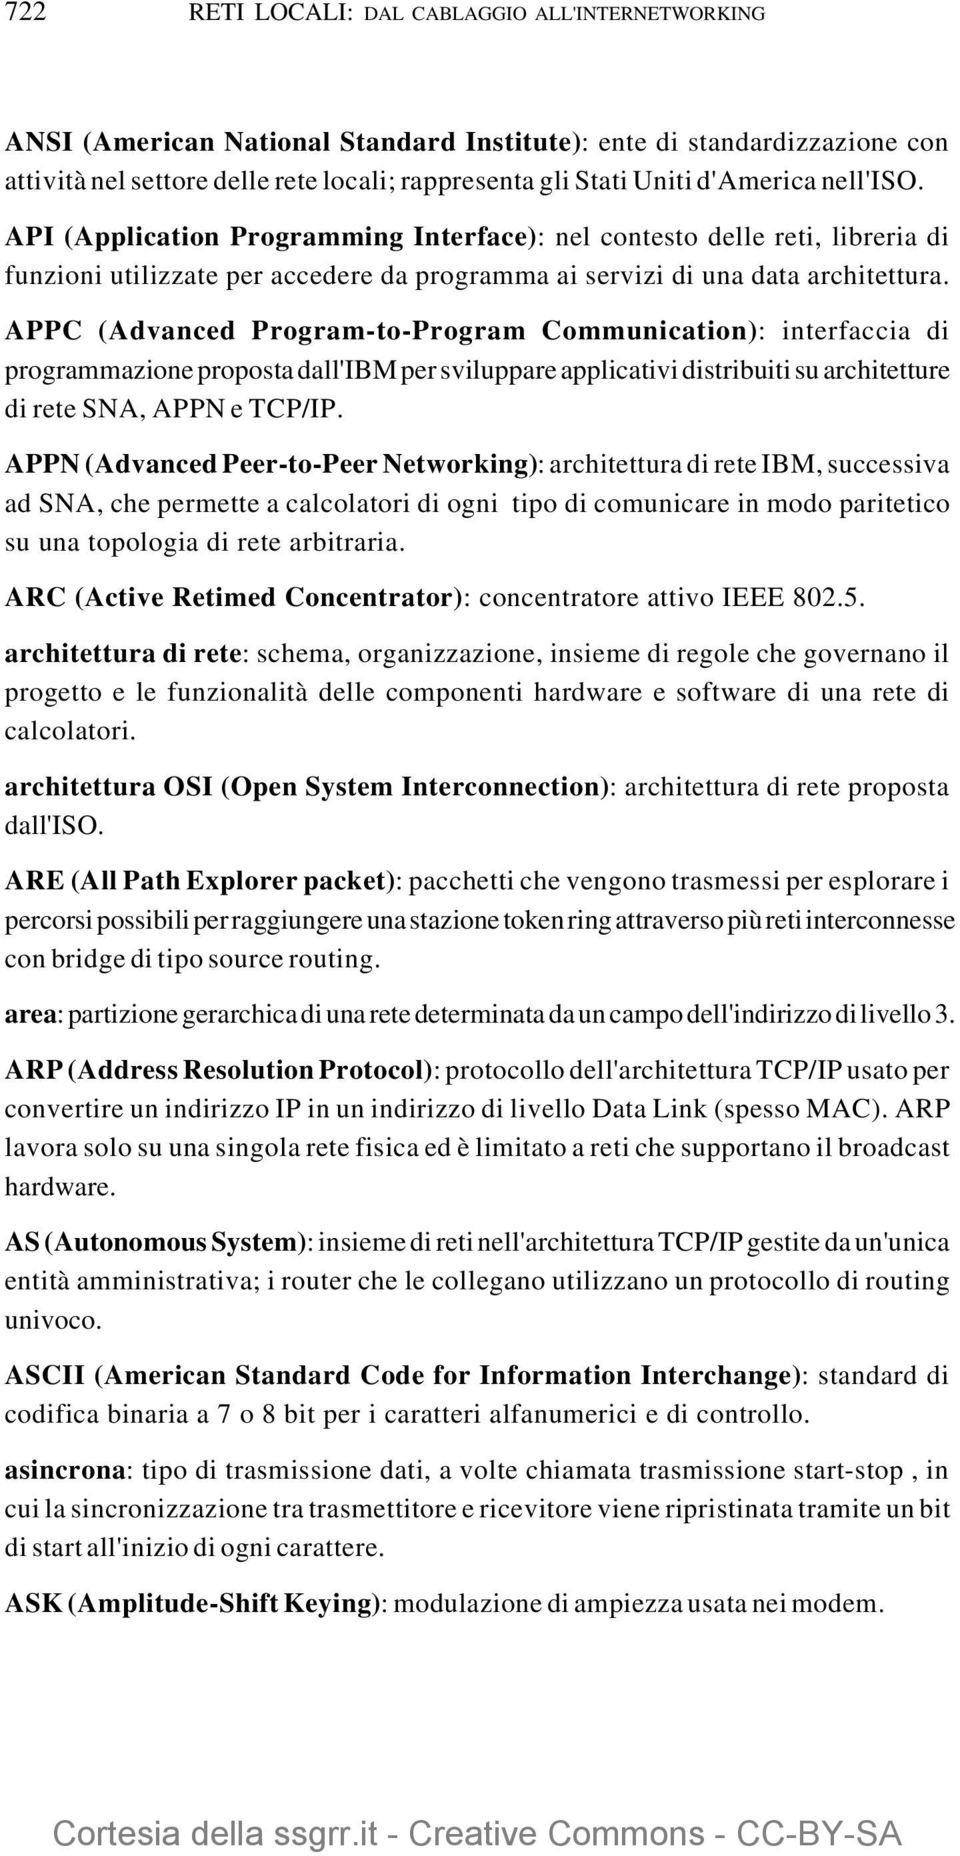 APPC (Advanced Program-to-Program Communication): interfaccia di programmazione proposta dall'ibm per sviluppare applicativi distribuiti su architetture di rete SNA, APPN e TCP/IP.